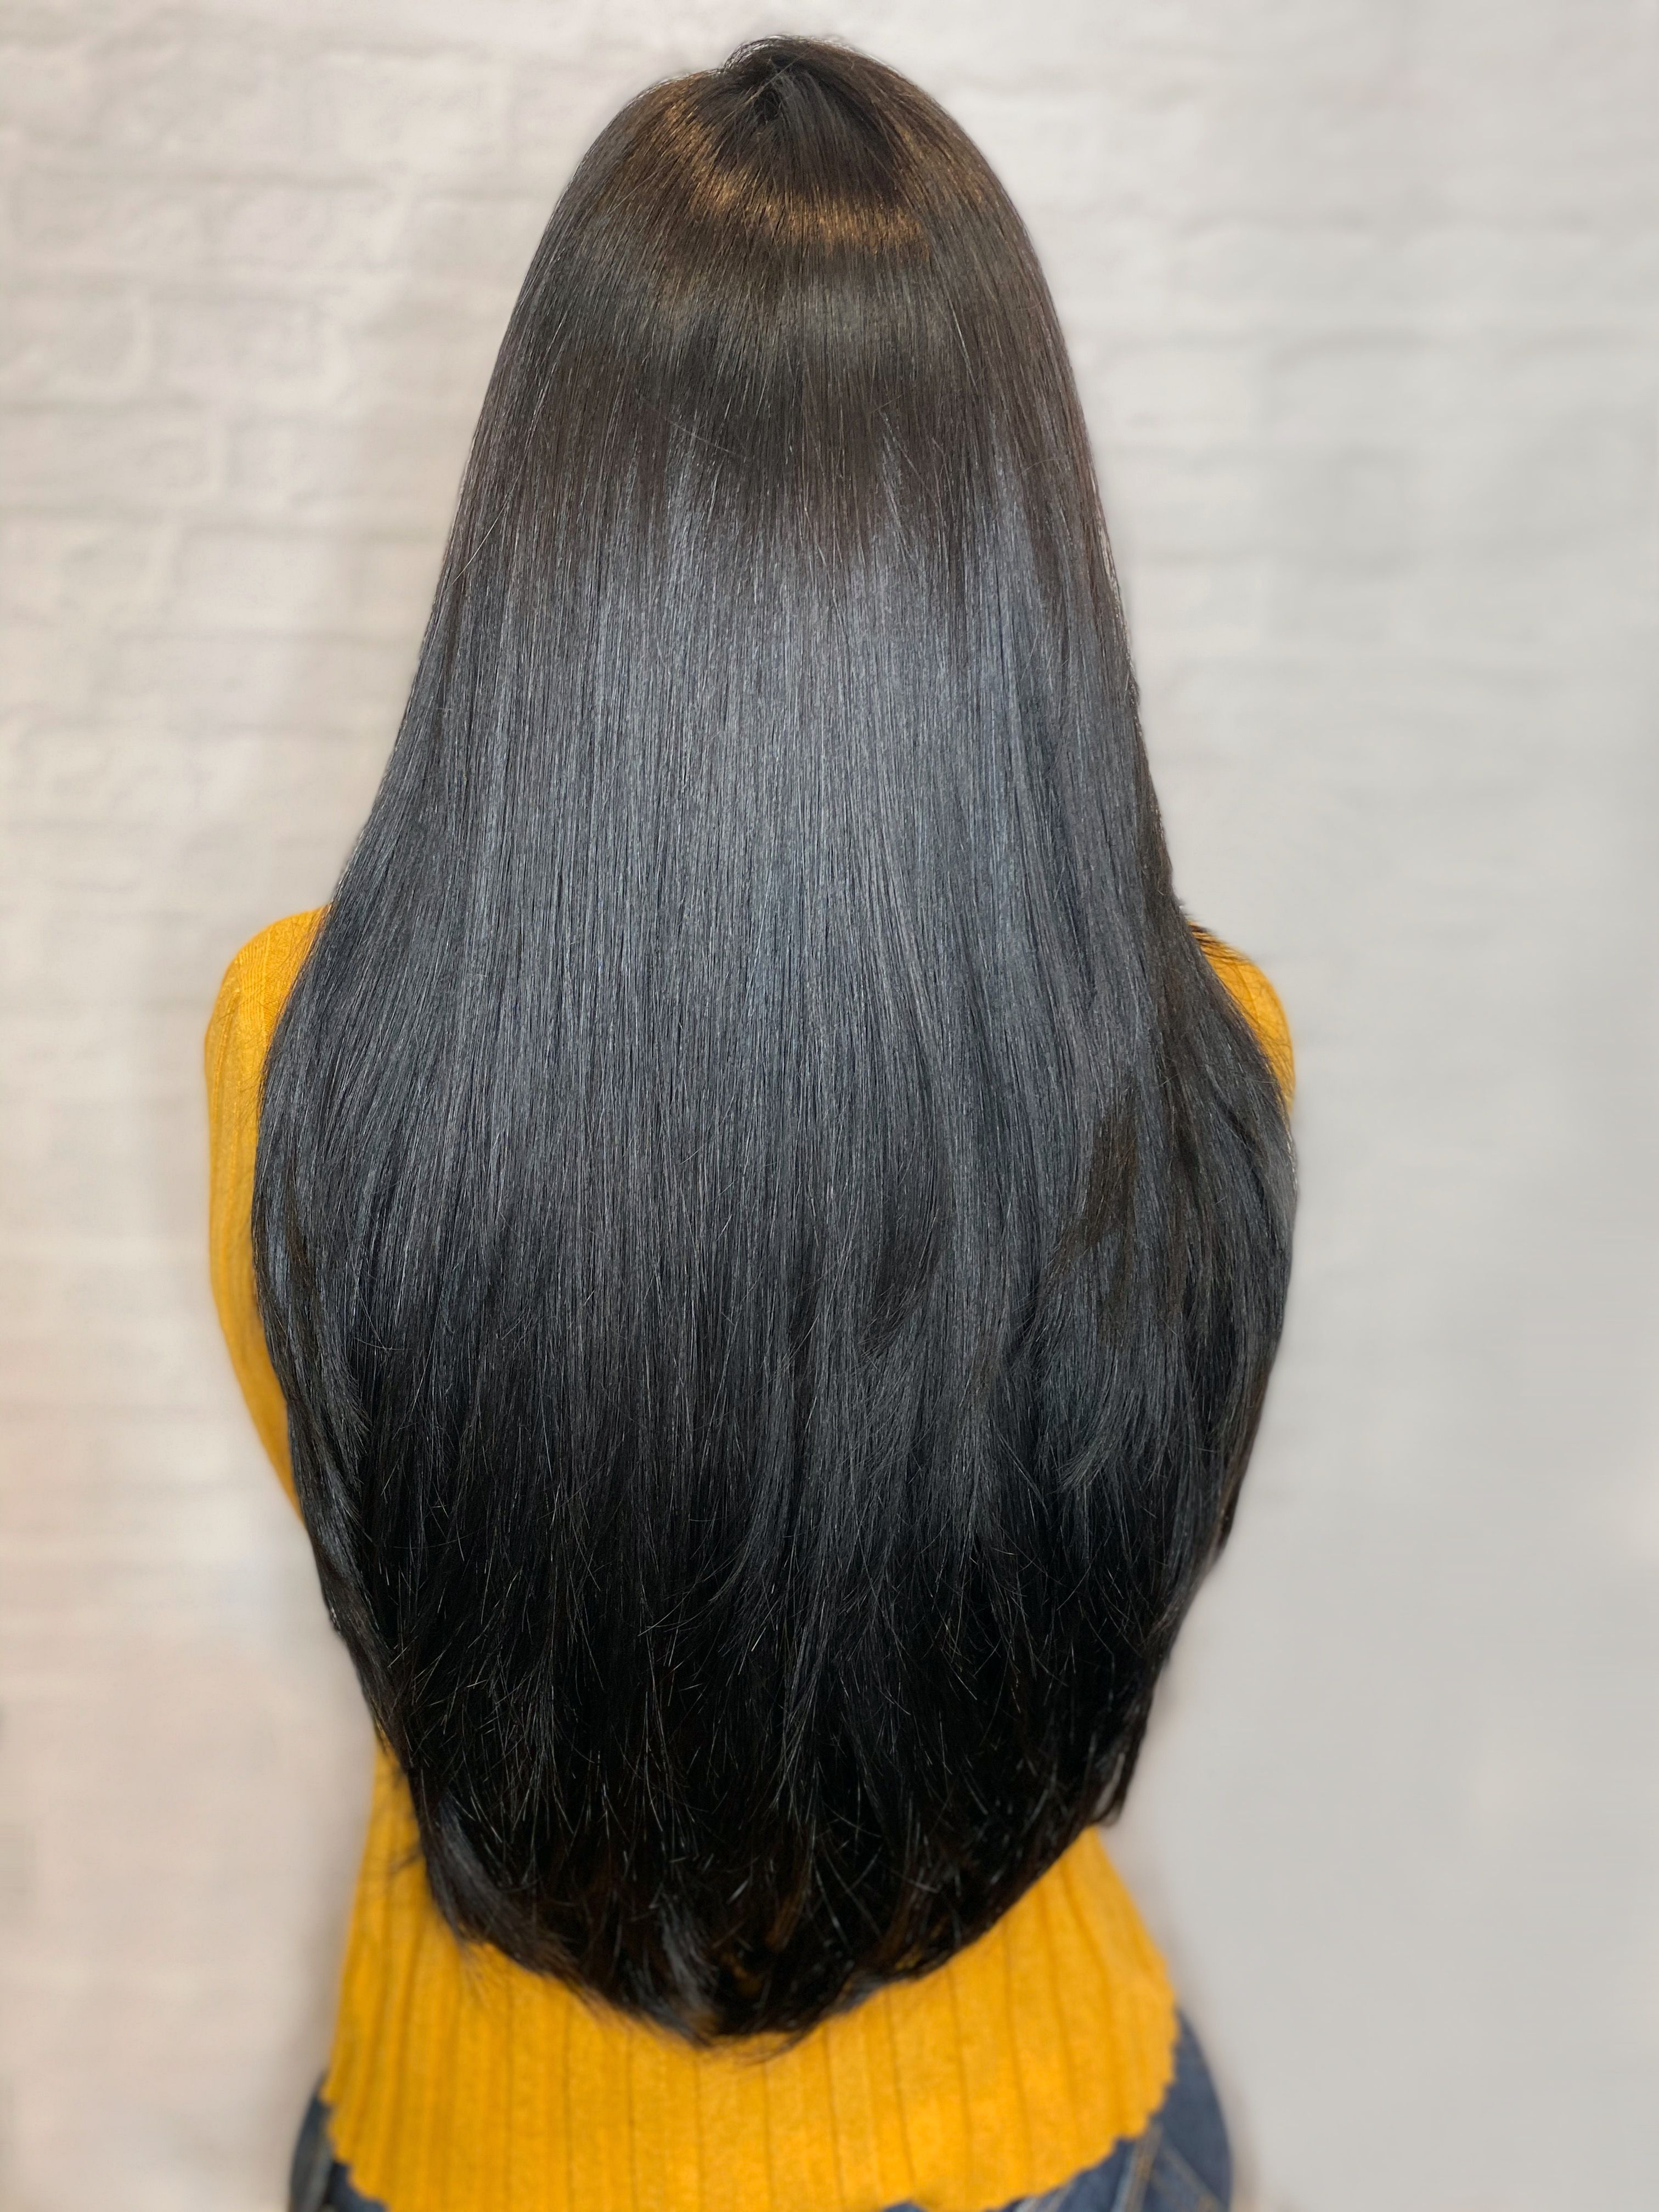 2020 New Straight Wigs Black Long Hair Voluminous Straight Hair Wigs For Black Teenager